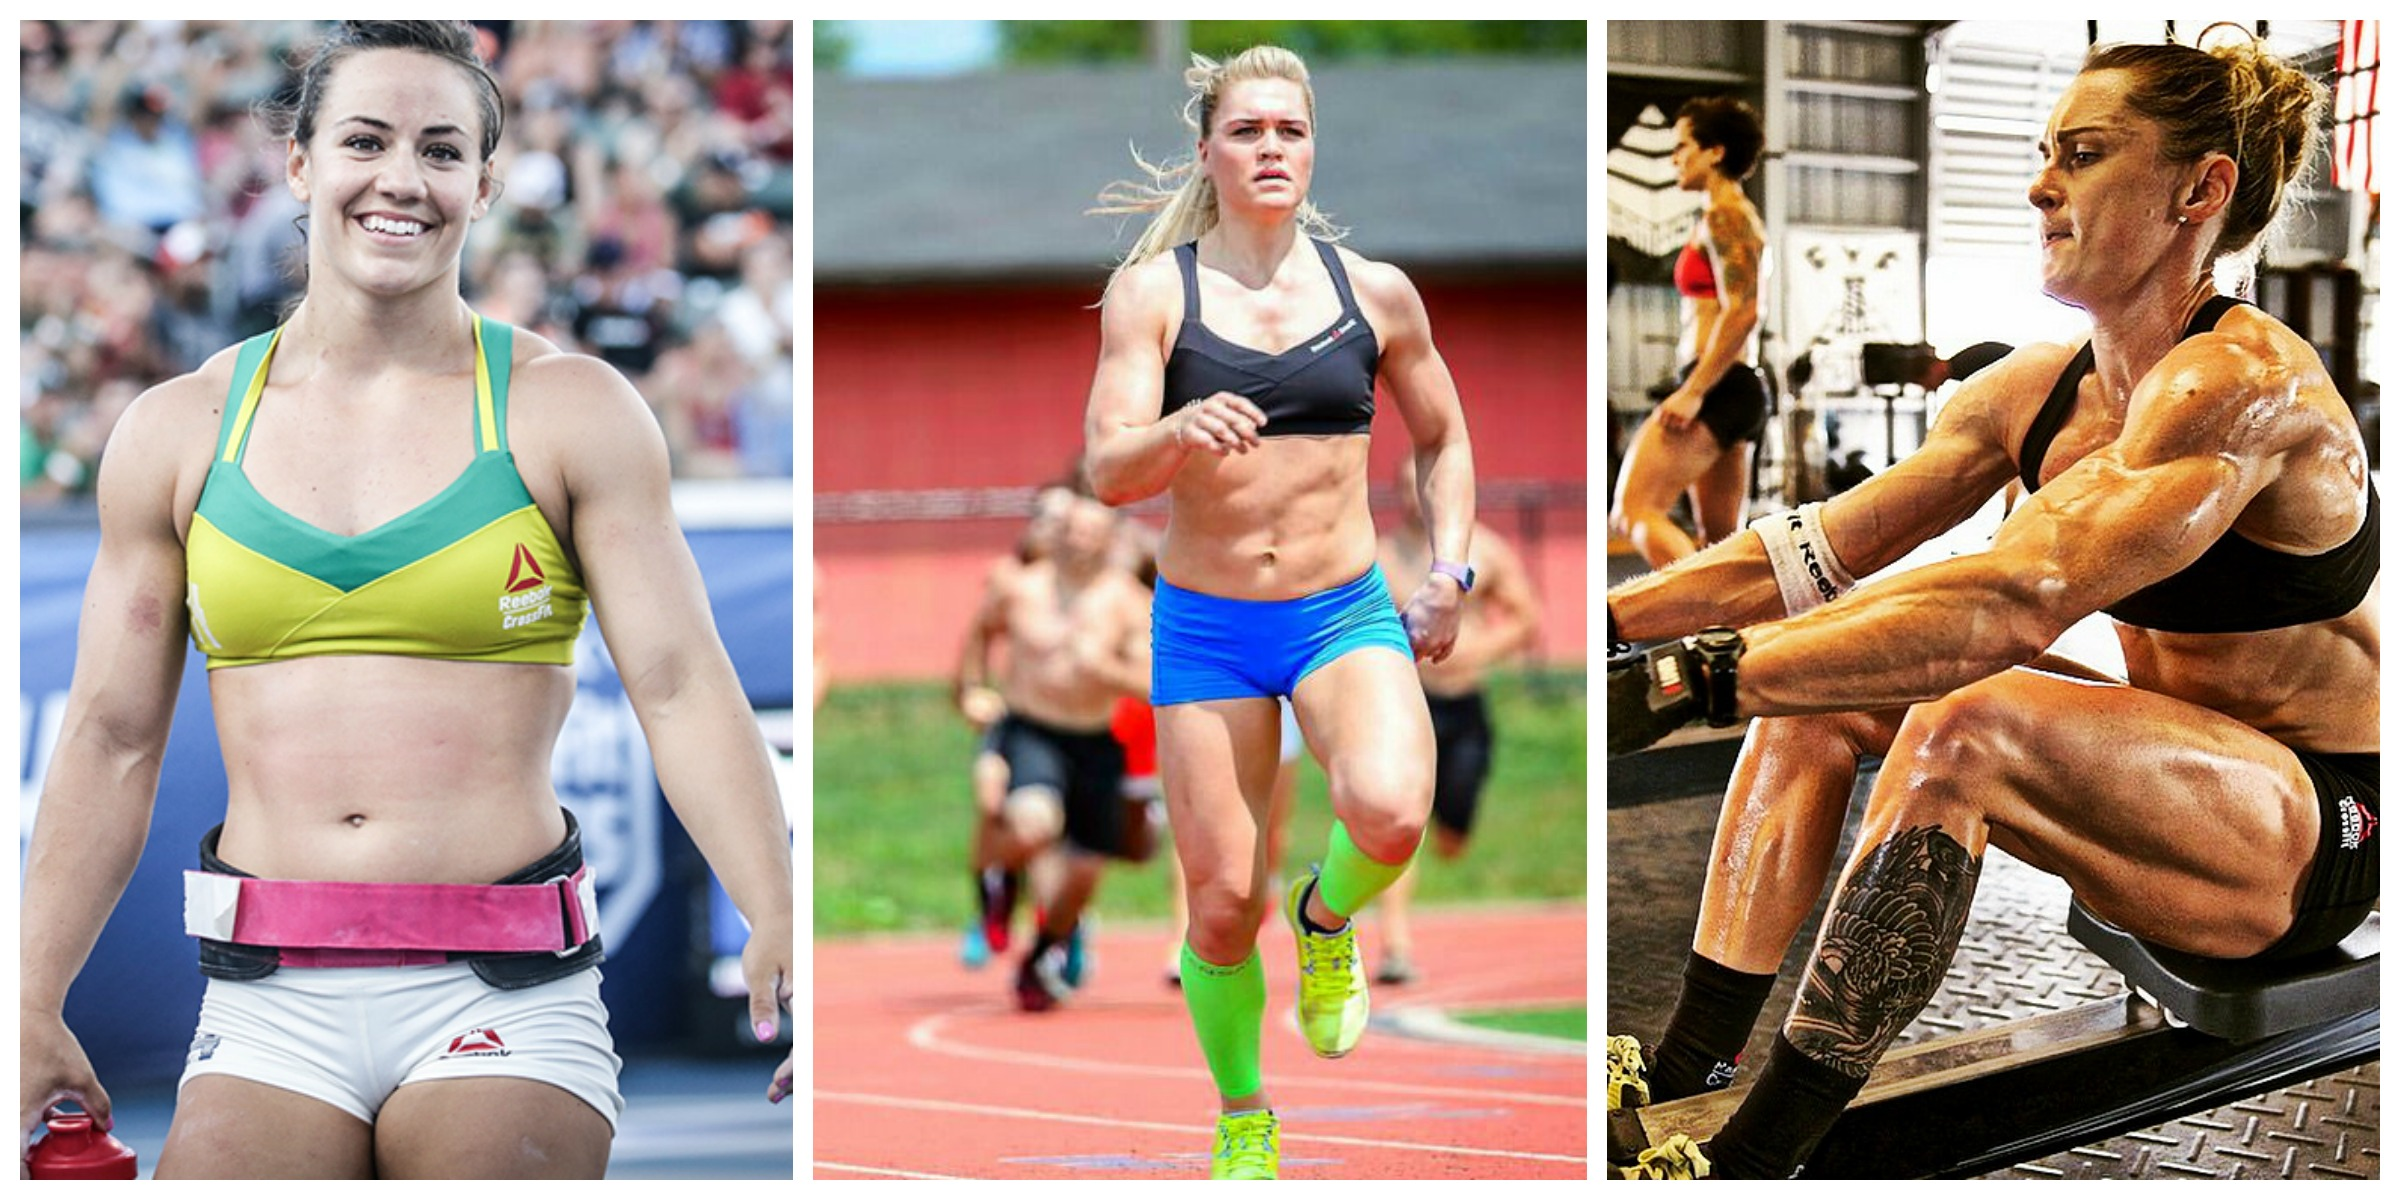 From left to right: Camille Leblanc-Bazinet, Fittest Woman on Earth, 2014; Katrin Davidsdottir, Fittest Woman on Earth, 2015; Samantha Briggs, Fittest Woman on Earth, 2013